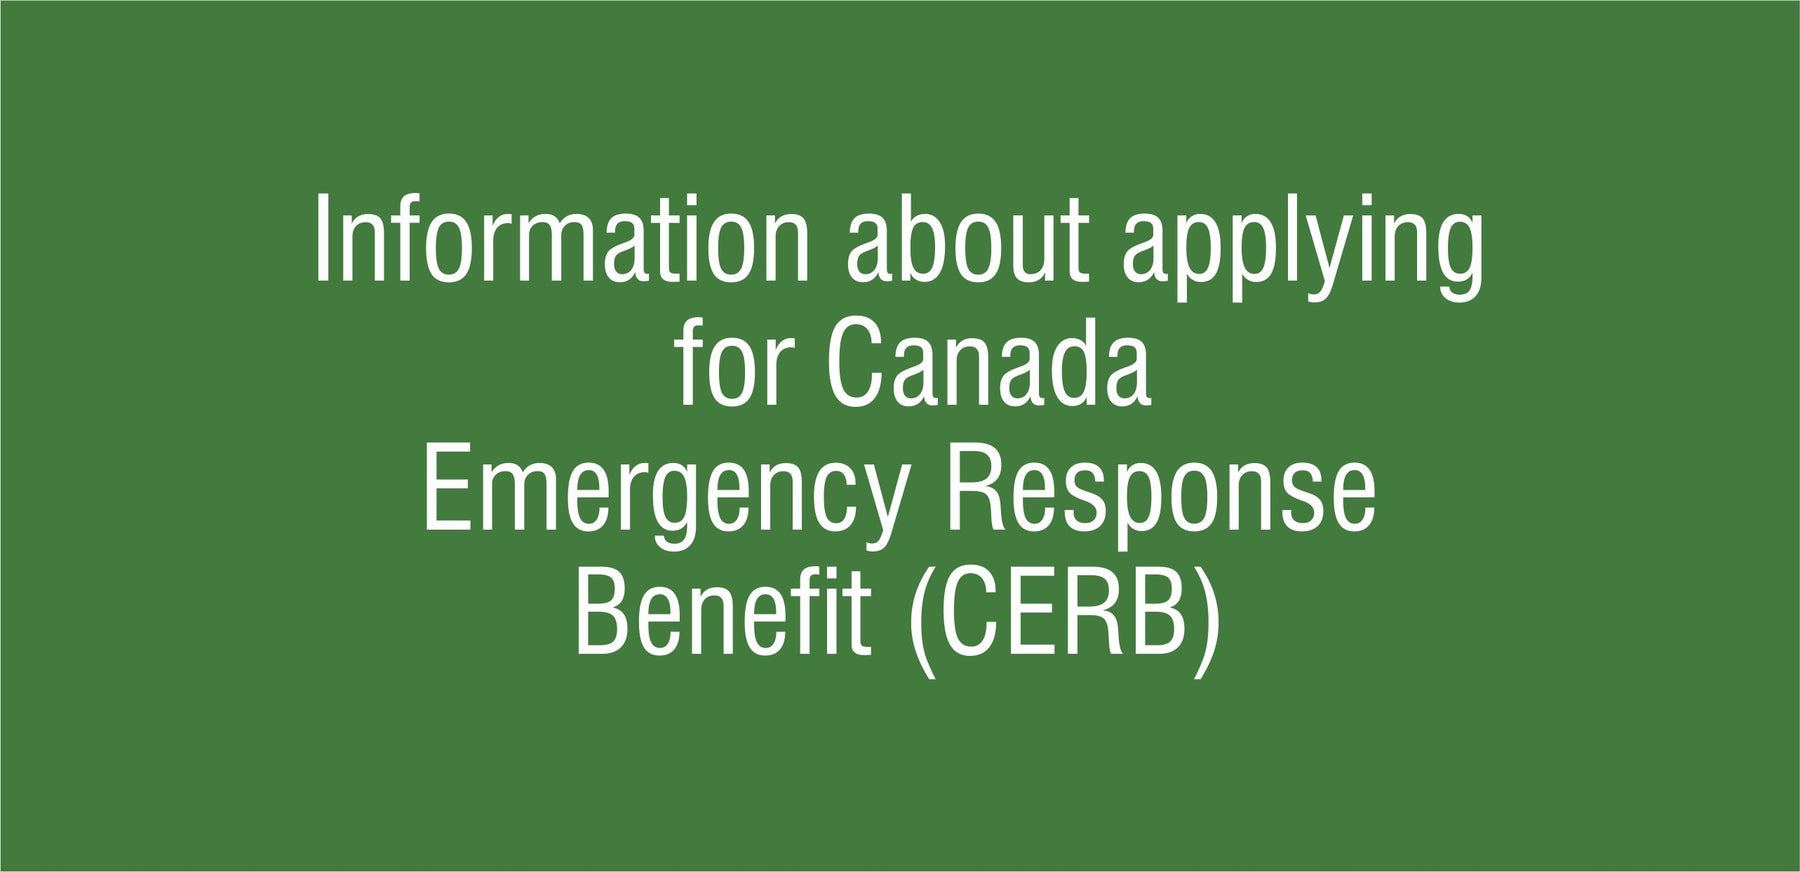 Information about applying for Canada Emergency Response Benefit (CERB)